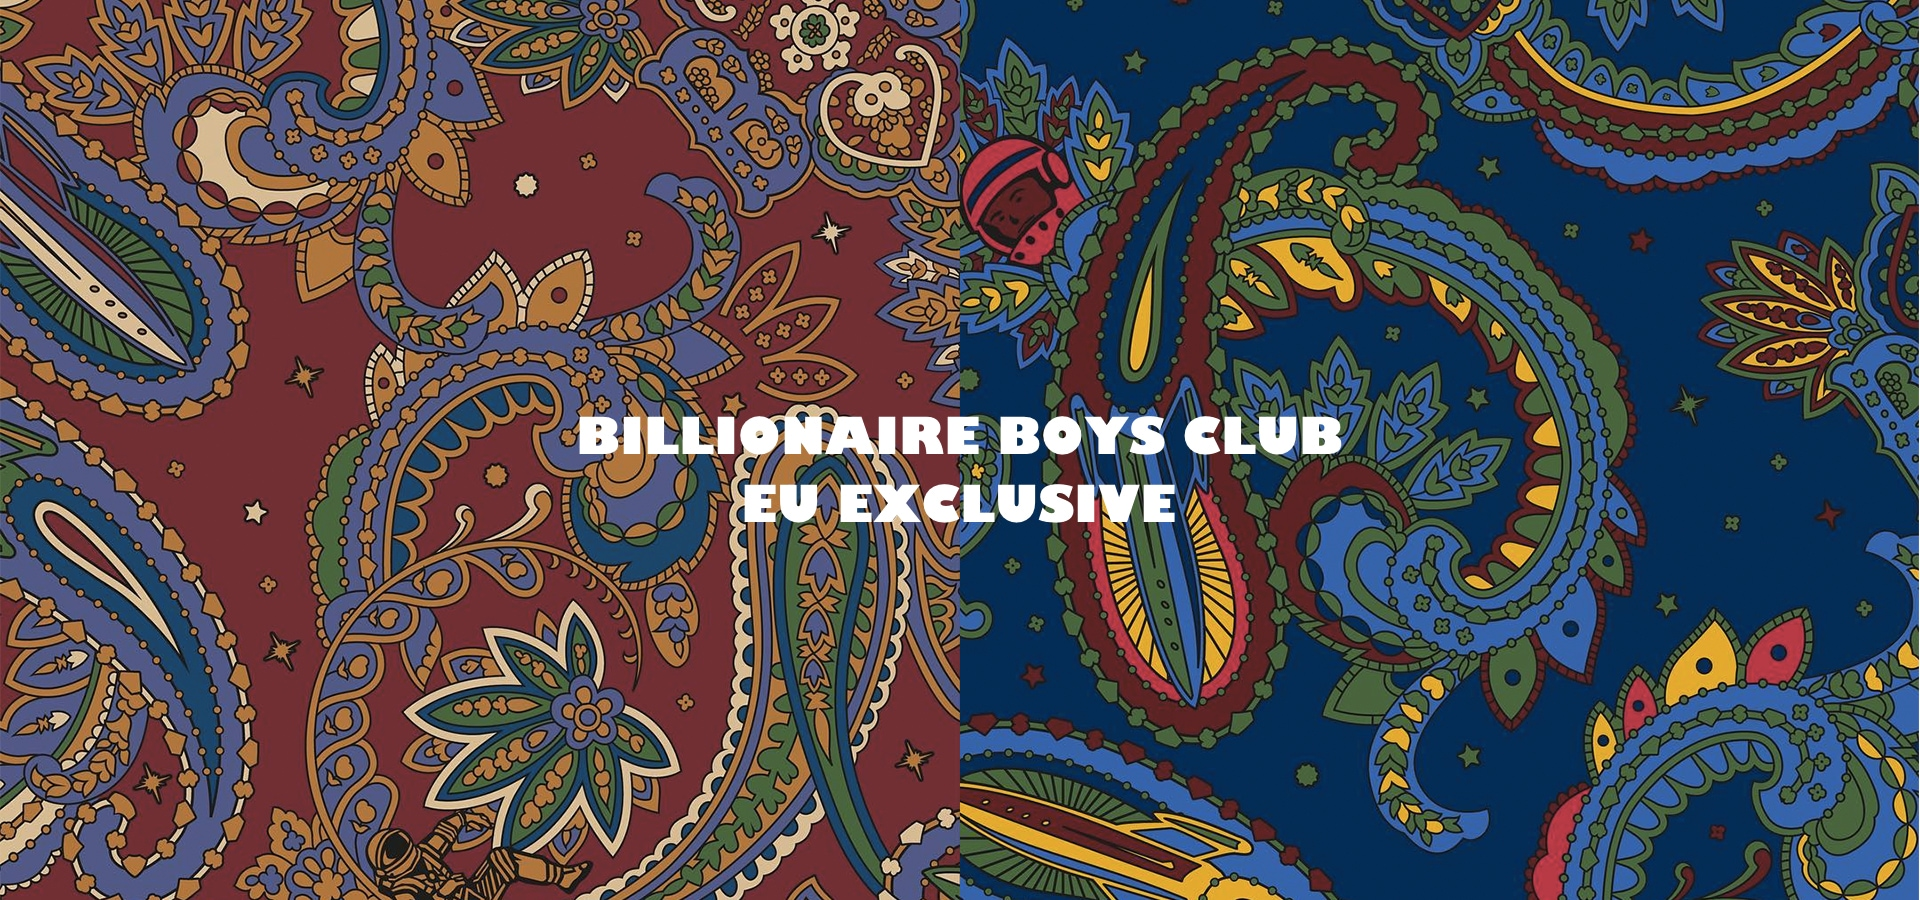 BILLIONAIRE BOYS CLUB ビリオネアボーイズクラブ EU EXCLUSIVE